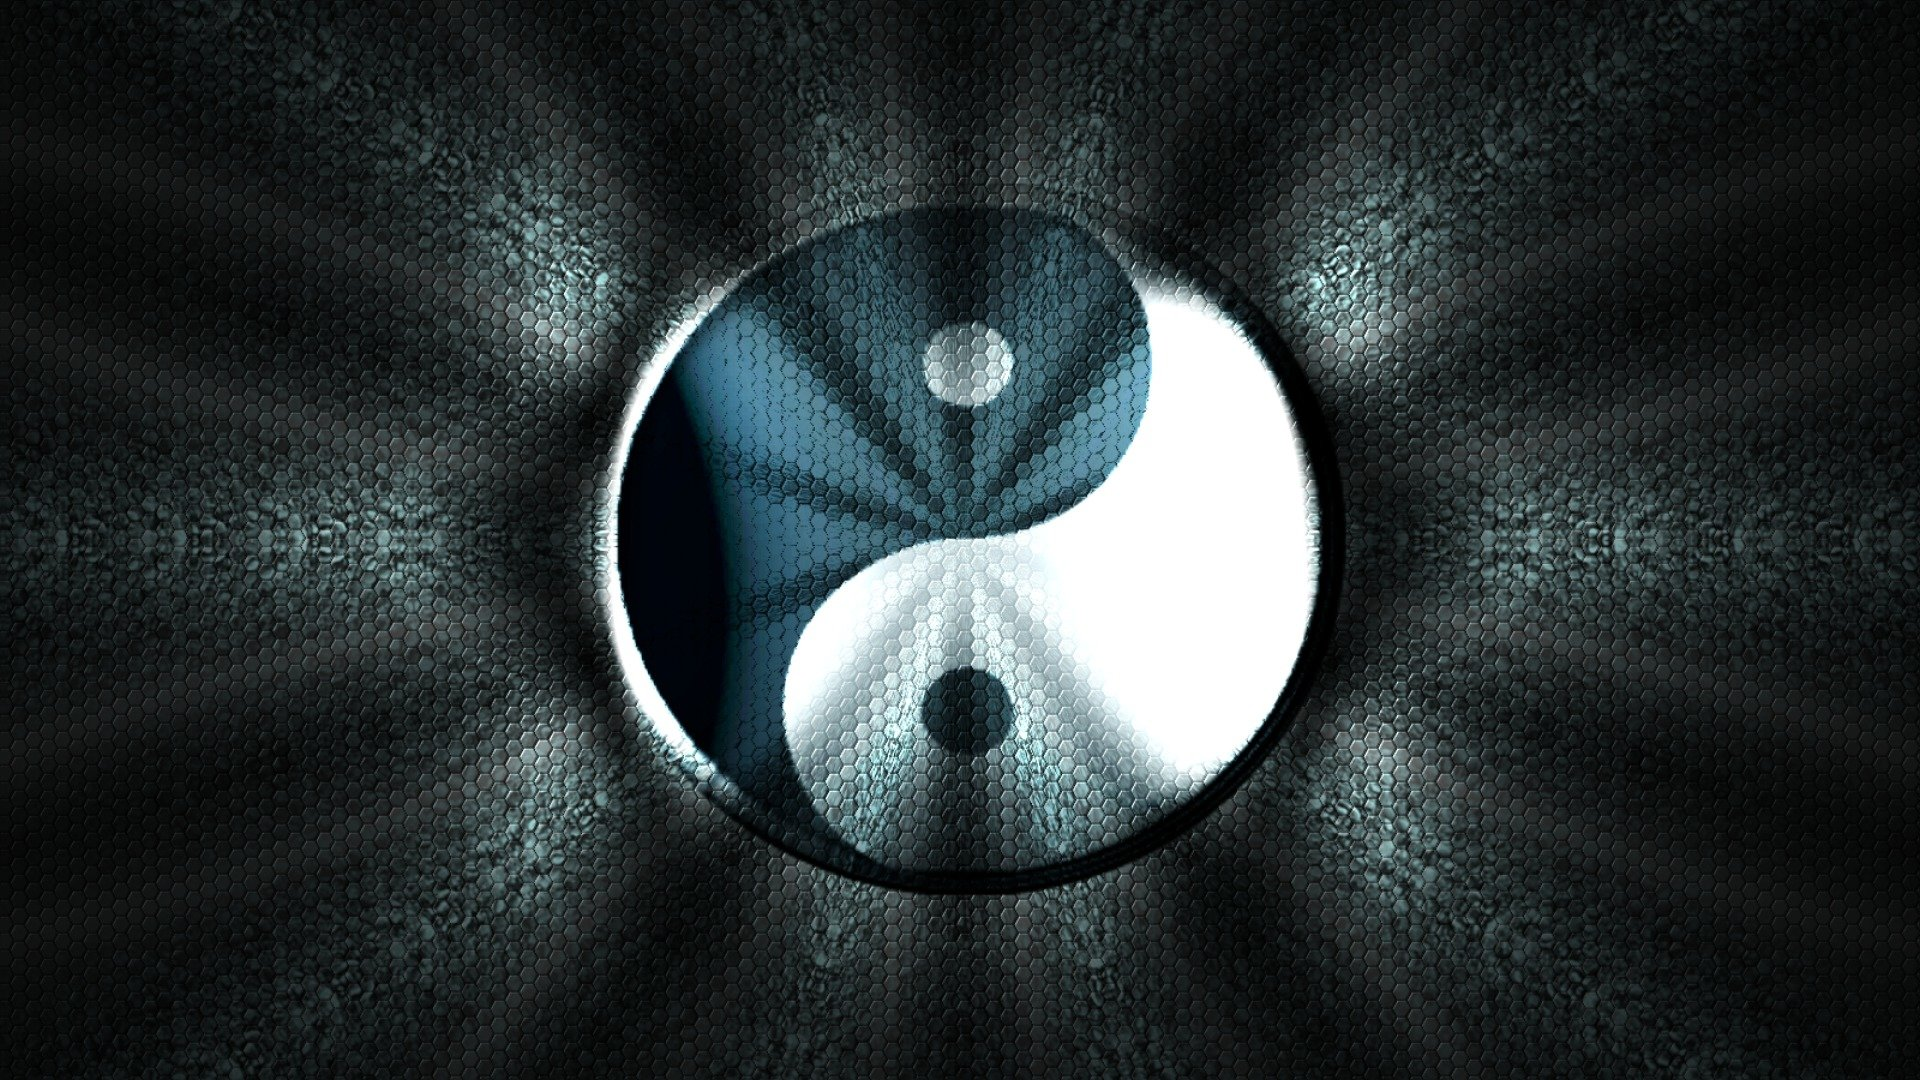 high resolution yin and yang hd 1080p wallpaper id:270722 for desktop